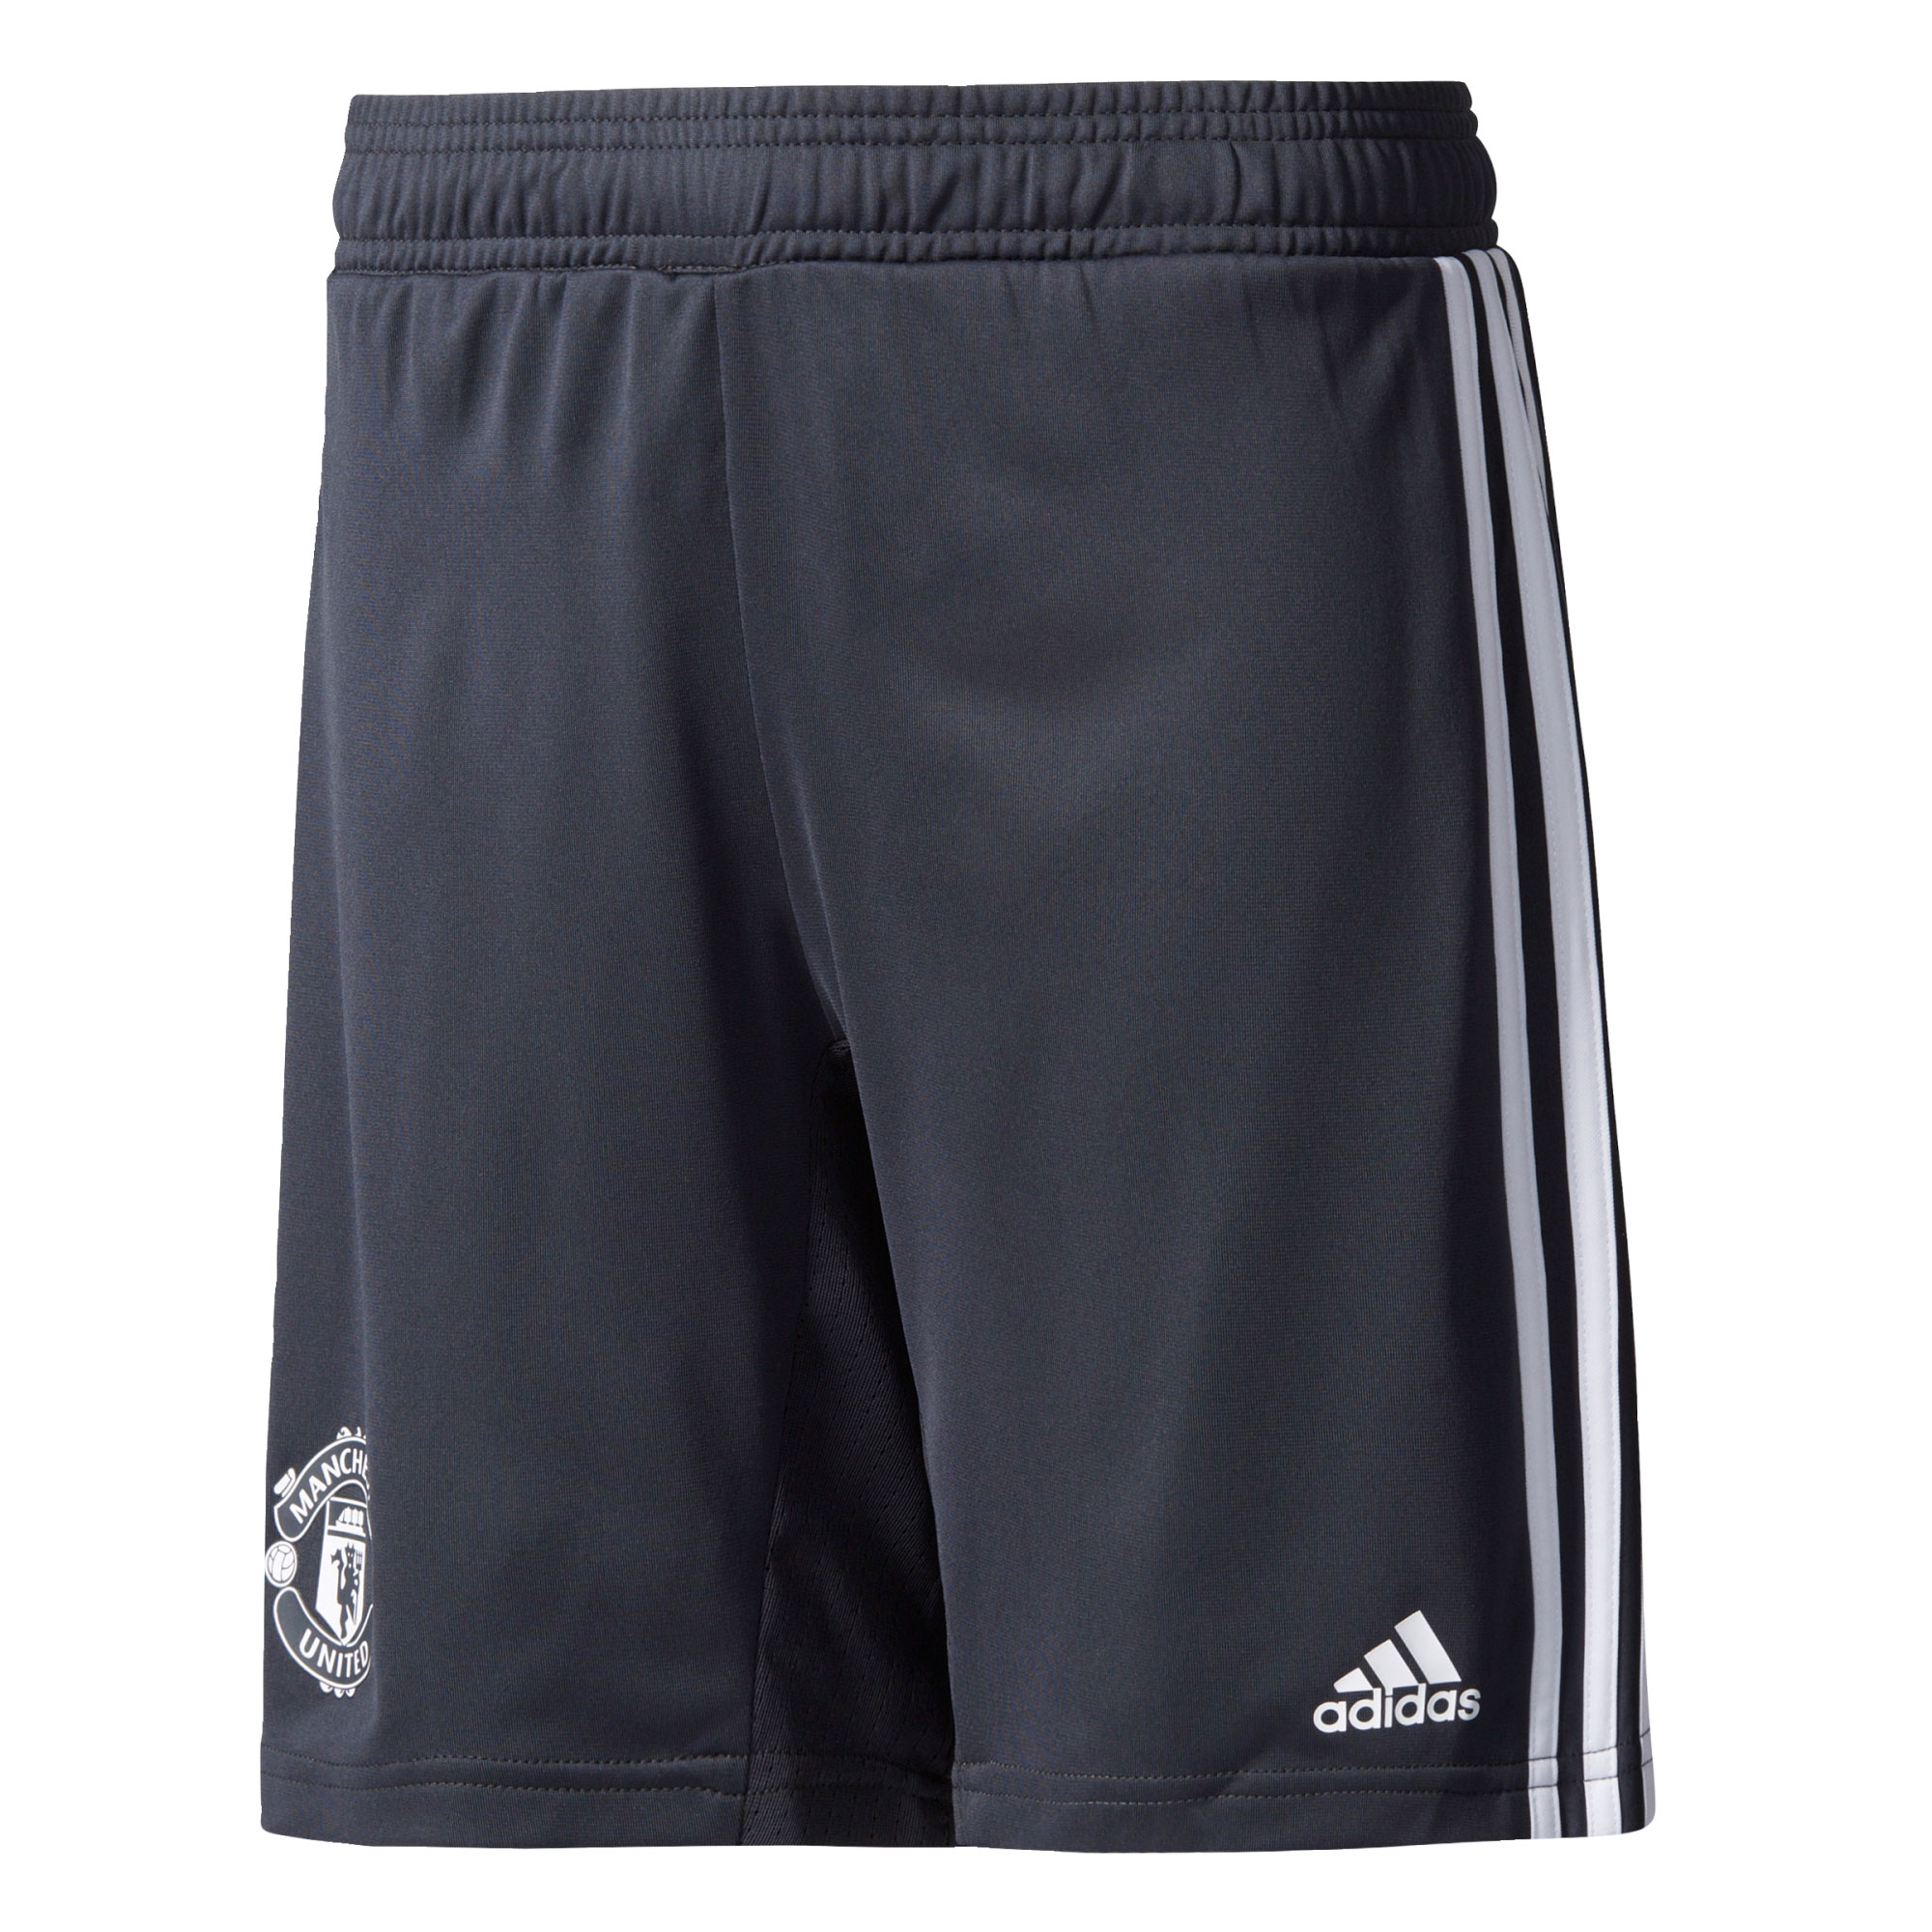 Manchester United Training Short - Dark Grey - Kids